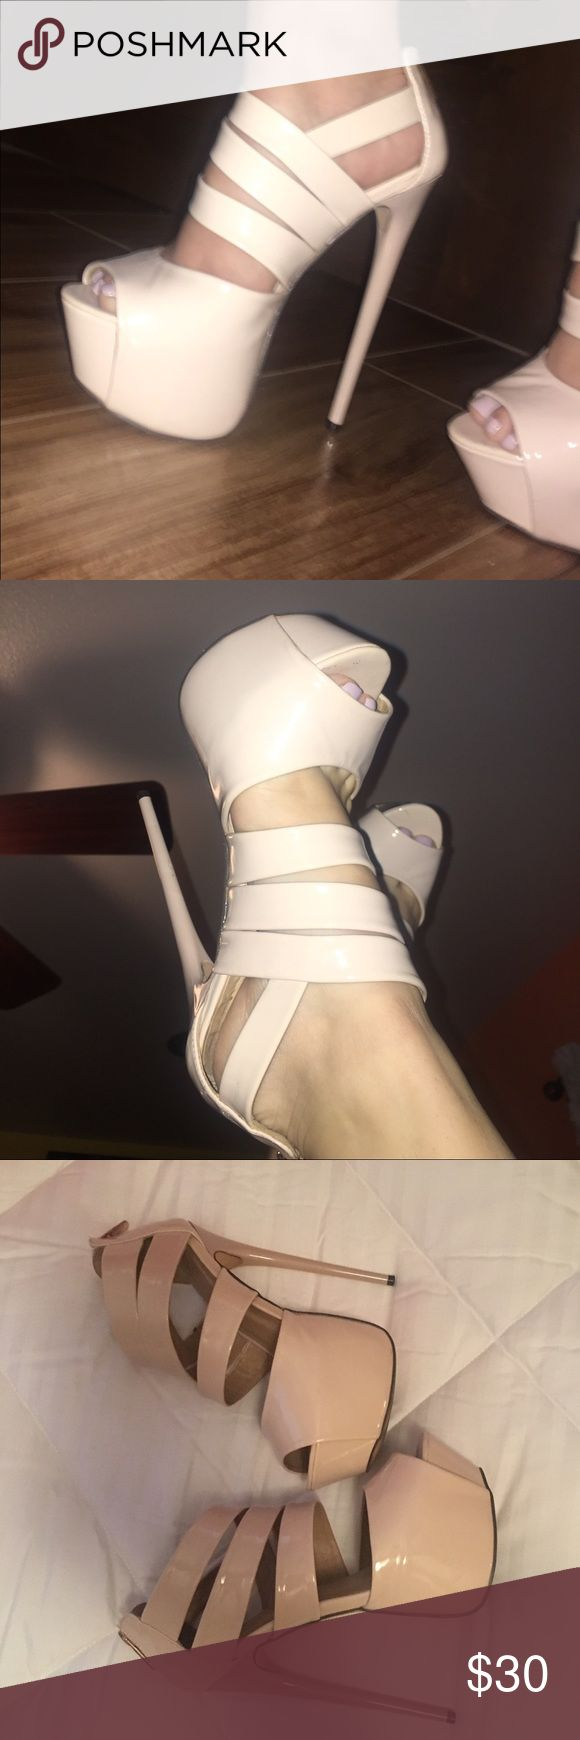 Sexy nude 6 inch heels size 6 Super sexy HIGH heels! 6 inch heel, 2 inch platform. Only worn once! Minimal signs of wear. By far the sexiest pair of shoes I've ever owned! Need to make room in my closet though. ❤️❤️❤️ Comes without box. Offers welcomed! Liliana Shoes Platforms